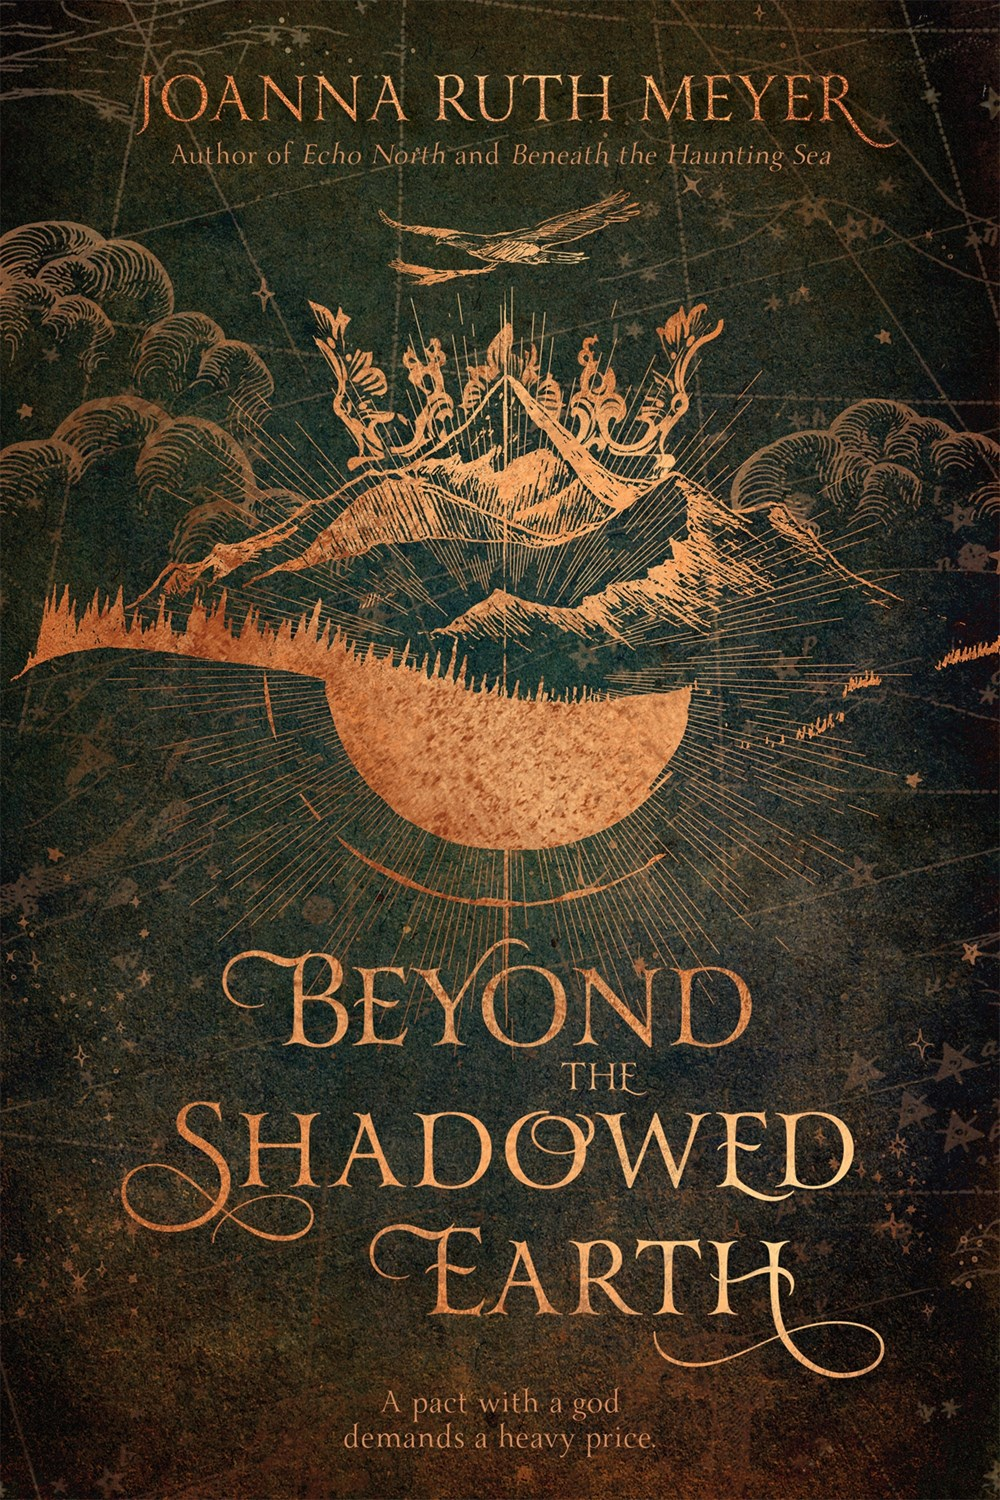 Beyond the Shadowed EarthJoanna Ruth Meyer - It has always been Eda's dream to become empress, no matter the cost. Haunted by her ambition and selfishness, she's convinced that the only way to achieve her goal is to barter with the gods. But all requests come with a price and Eda bargains away the soul of her best friend in exchange for the crown.Read more here »